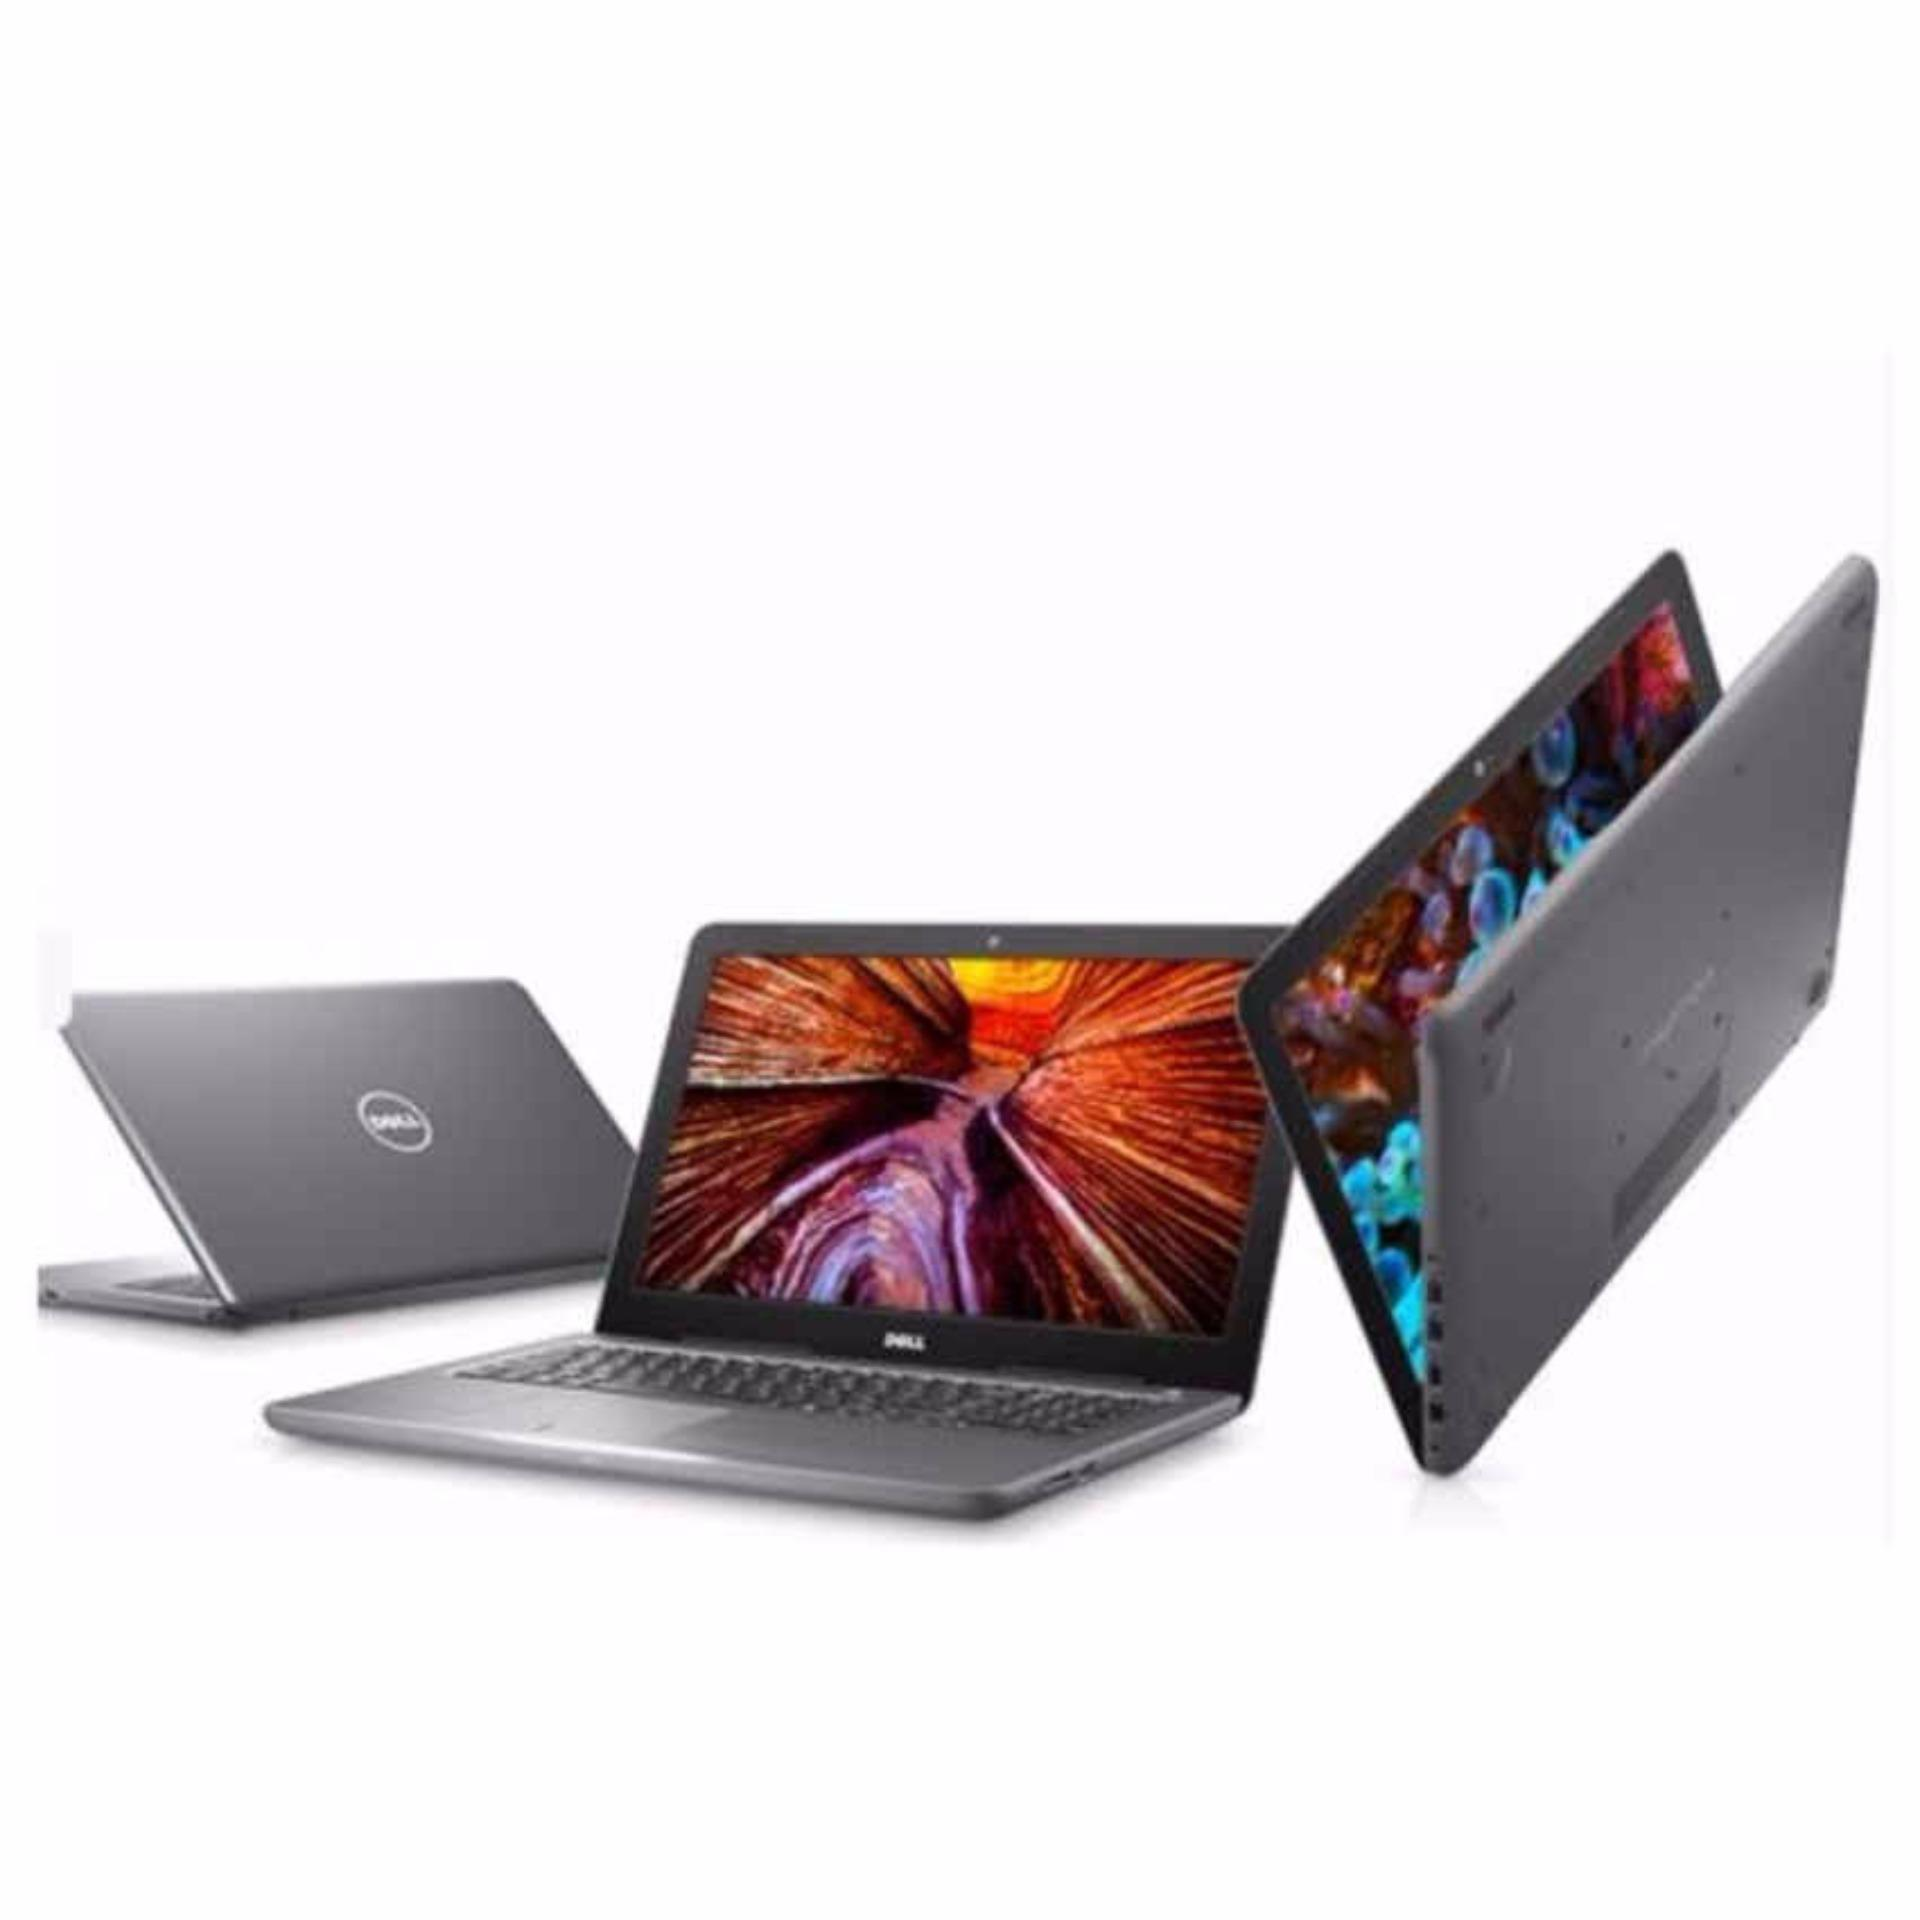 DELL LAPTOP 15.6INCH AMD Radeon R7 M445 2GB i5-7200U 5567-720812G-W10